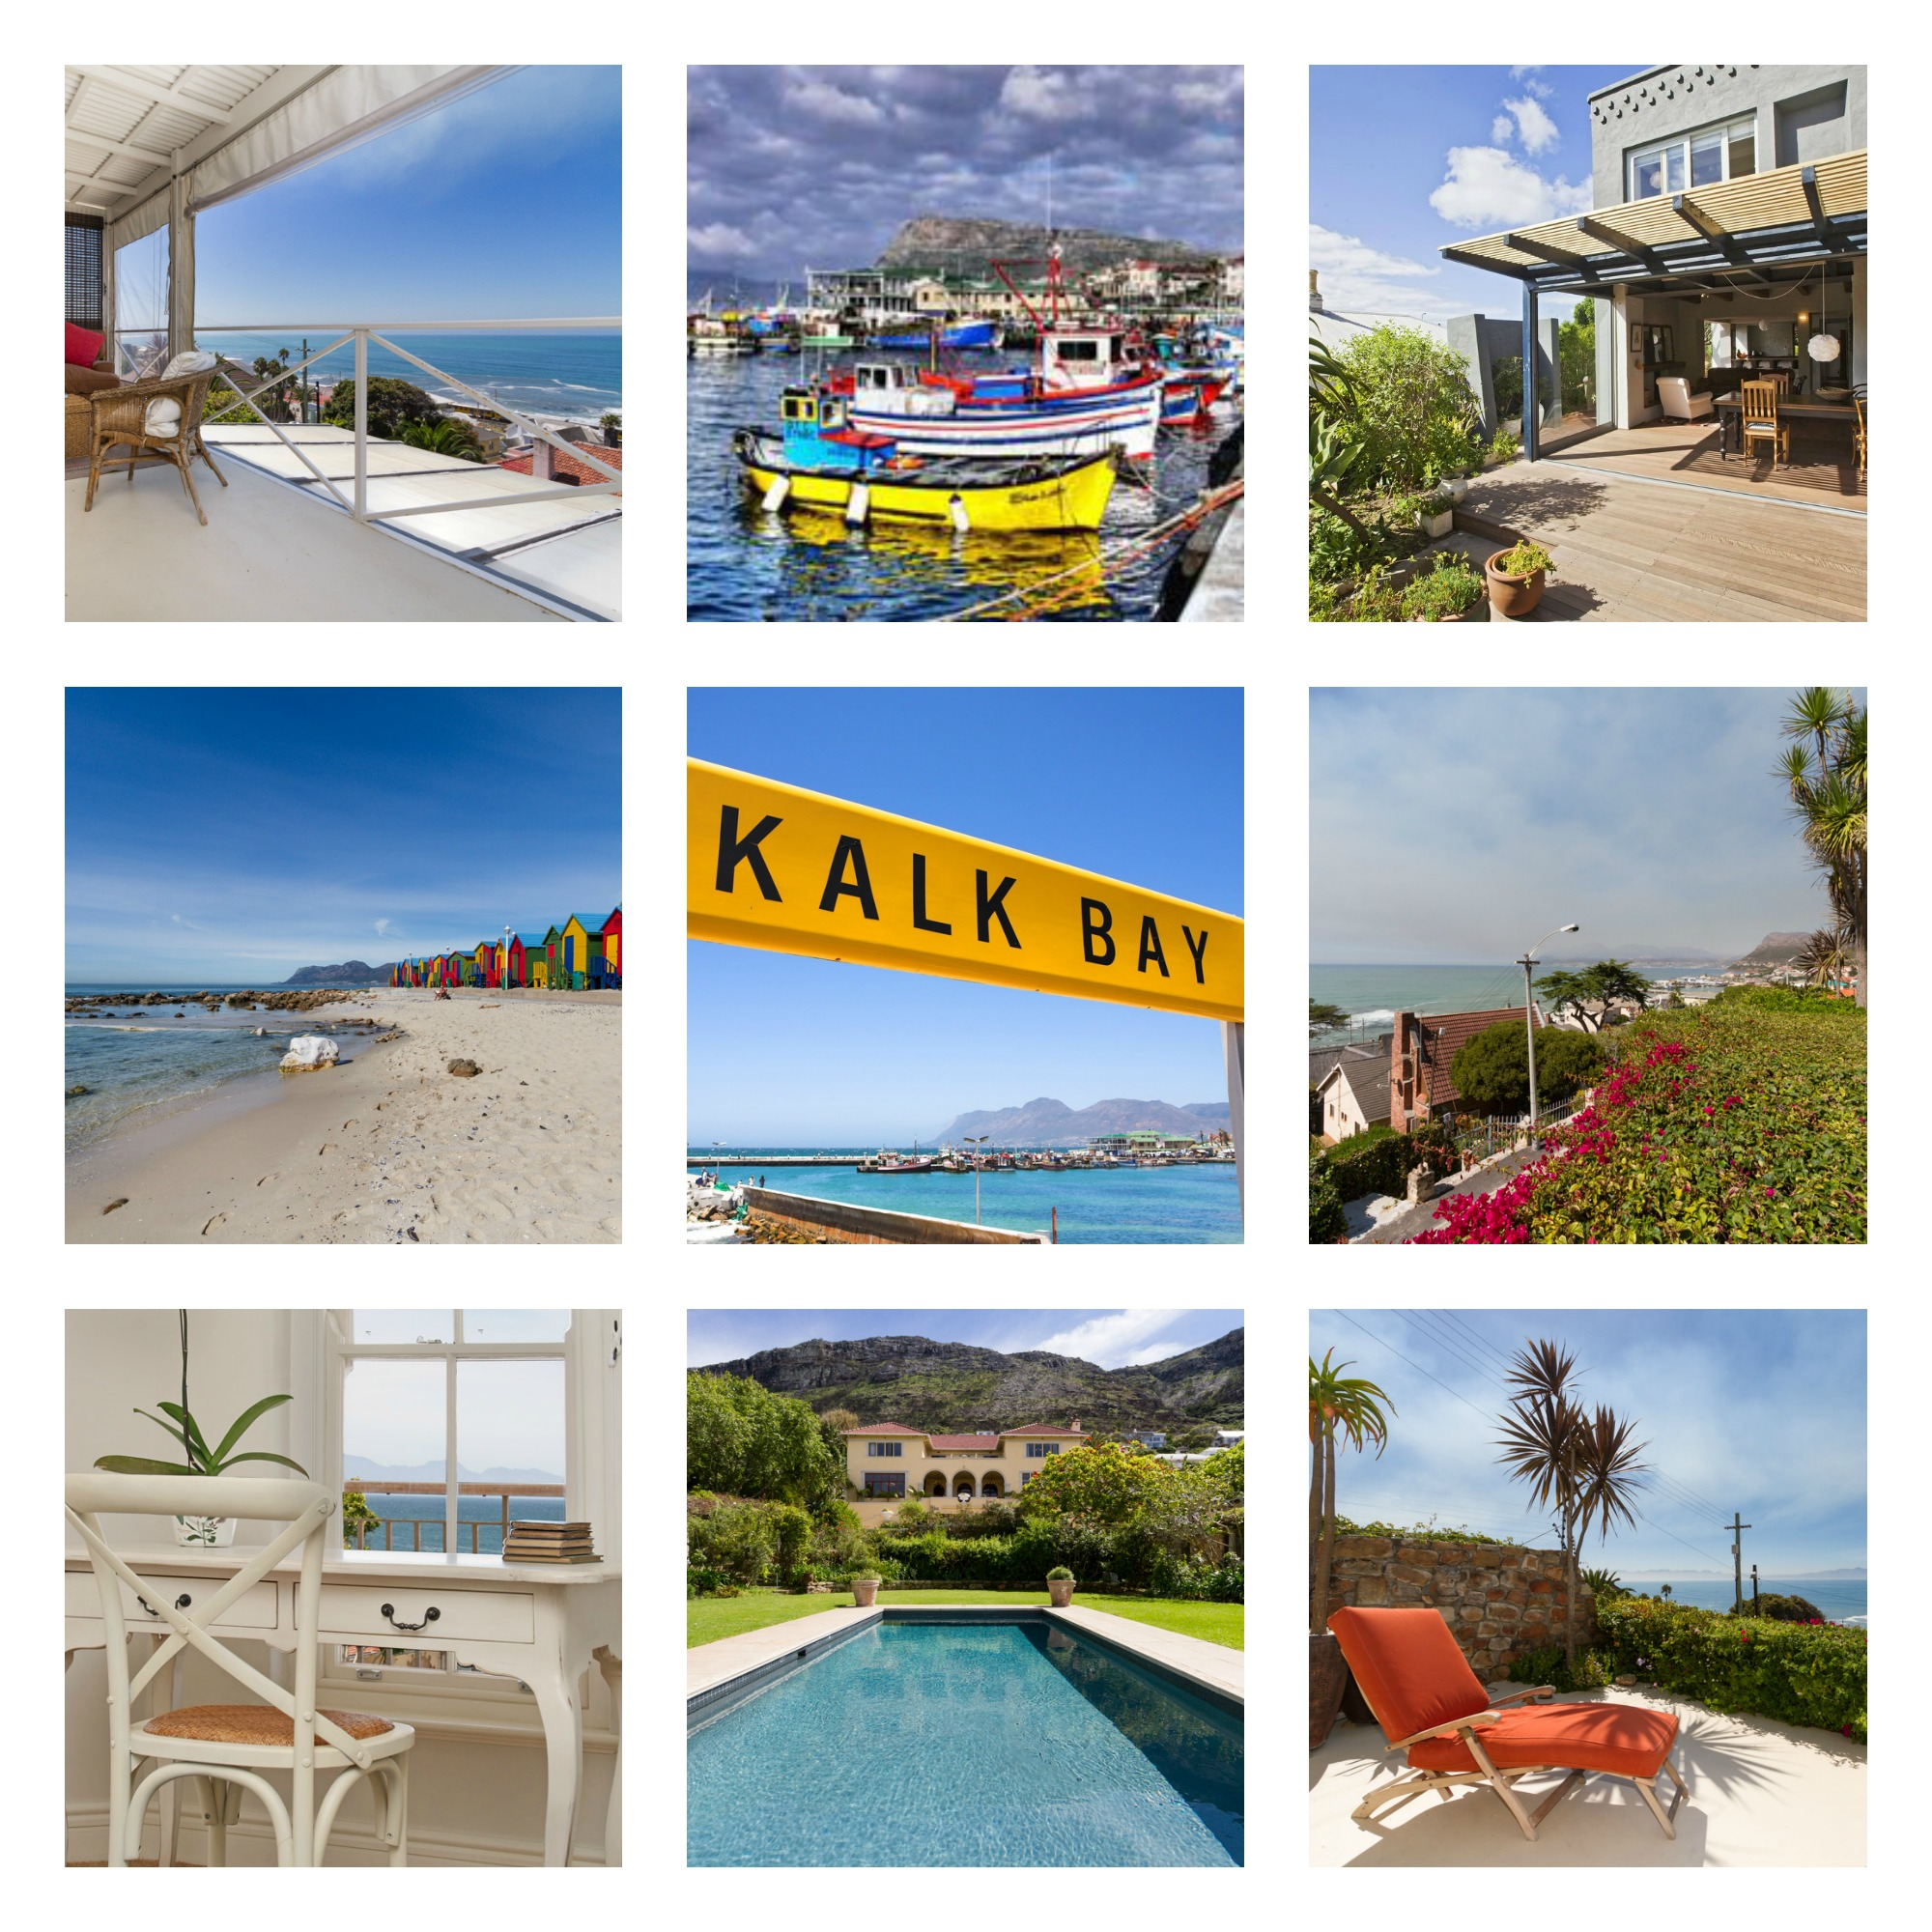 kalk-bay-accommodation